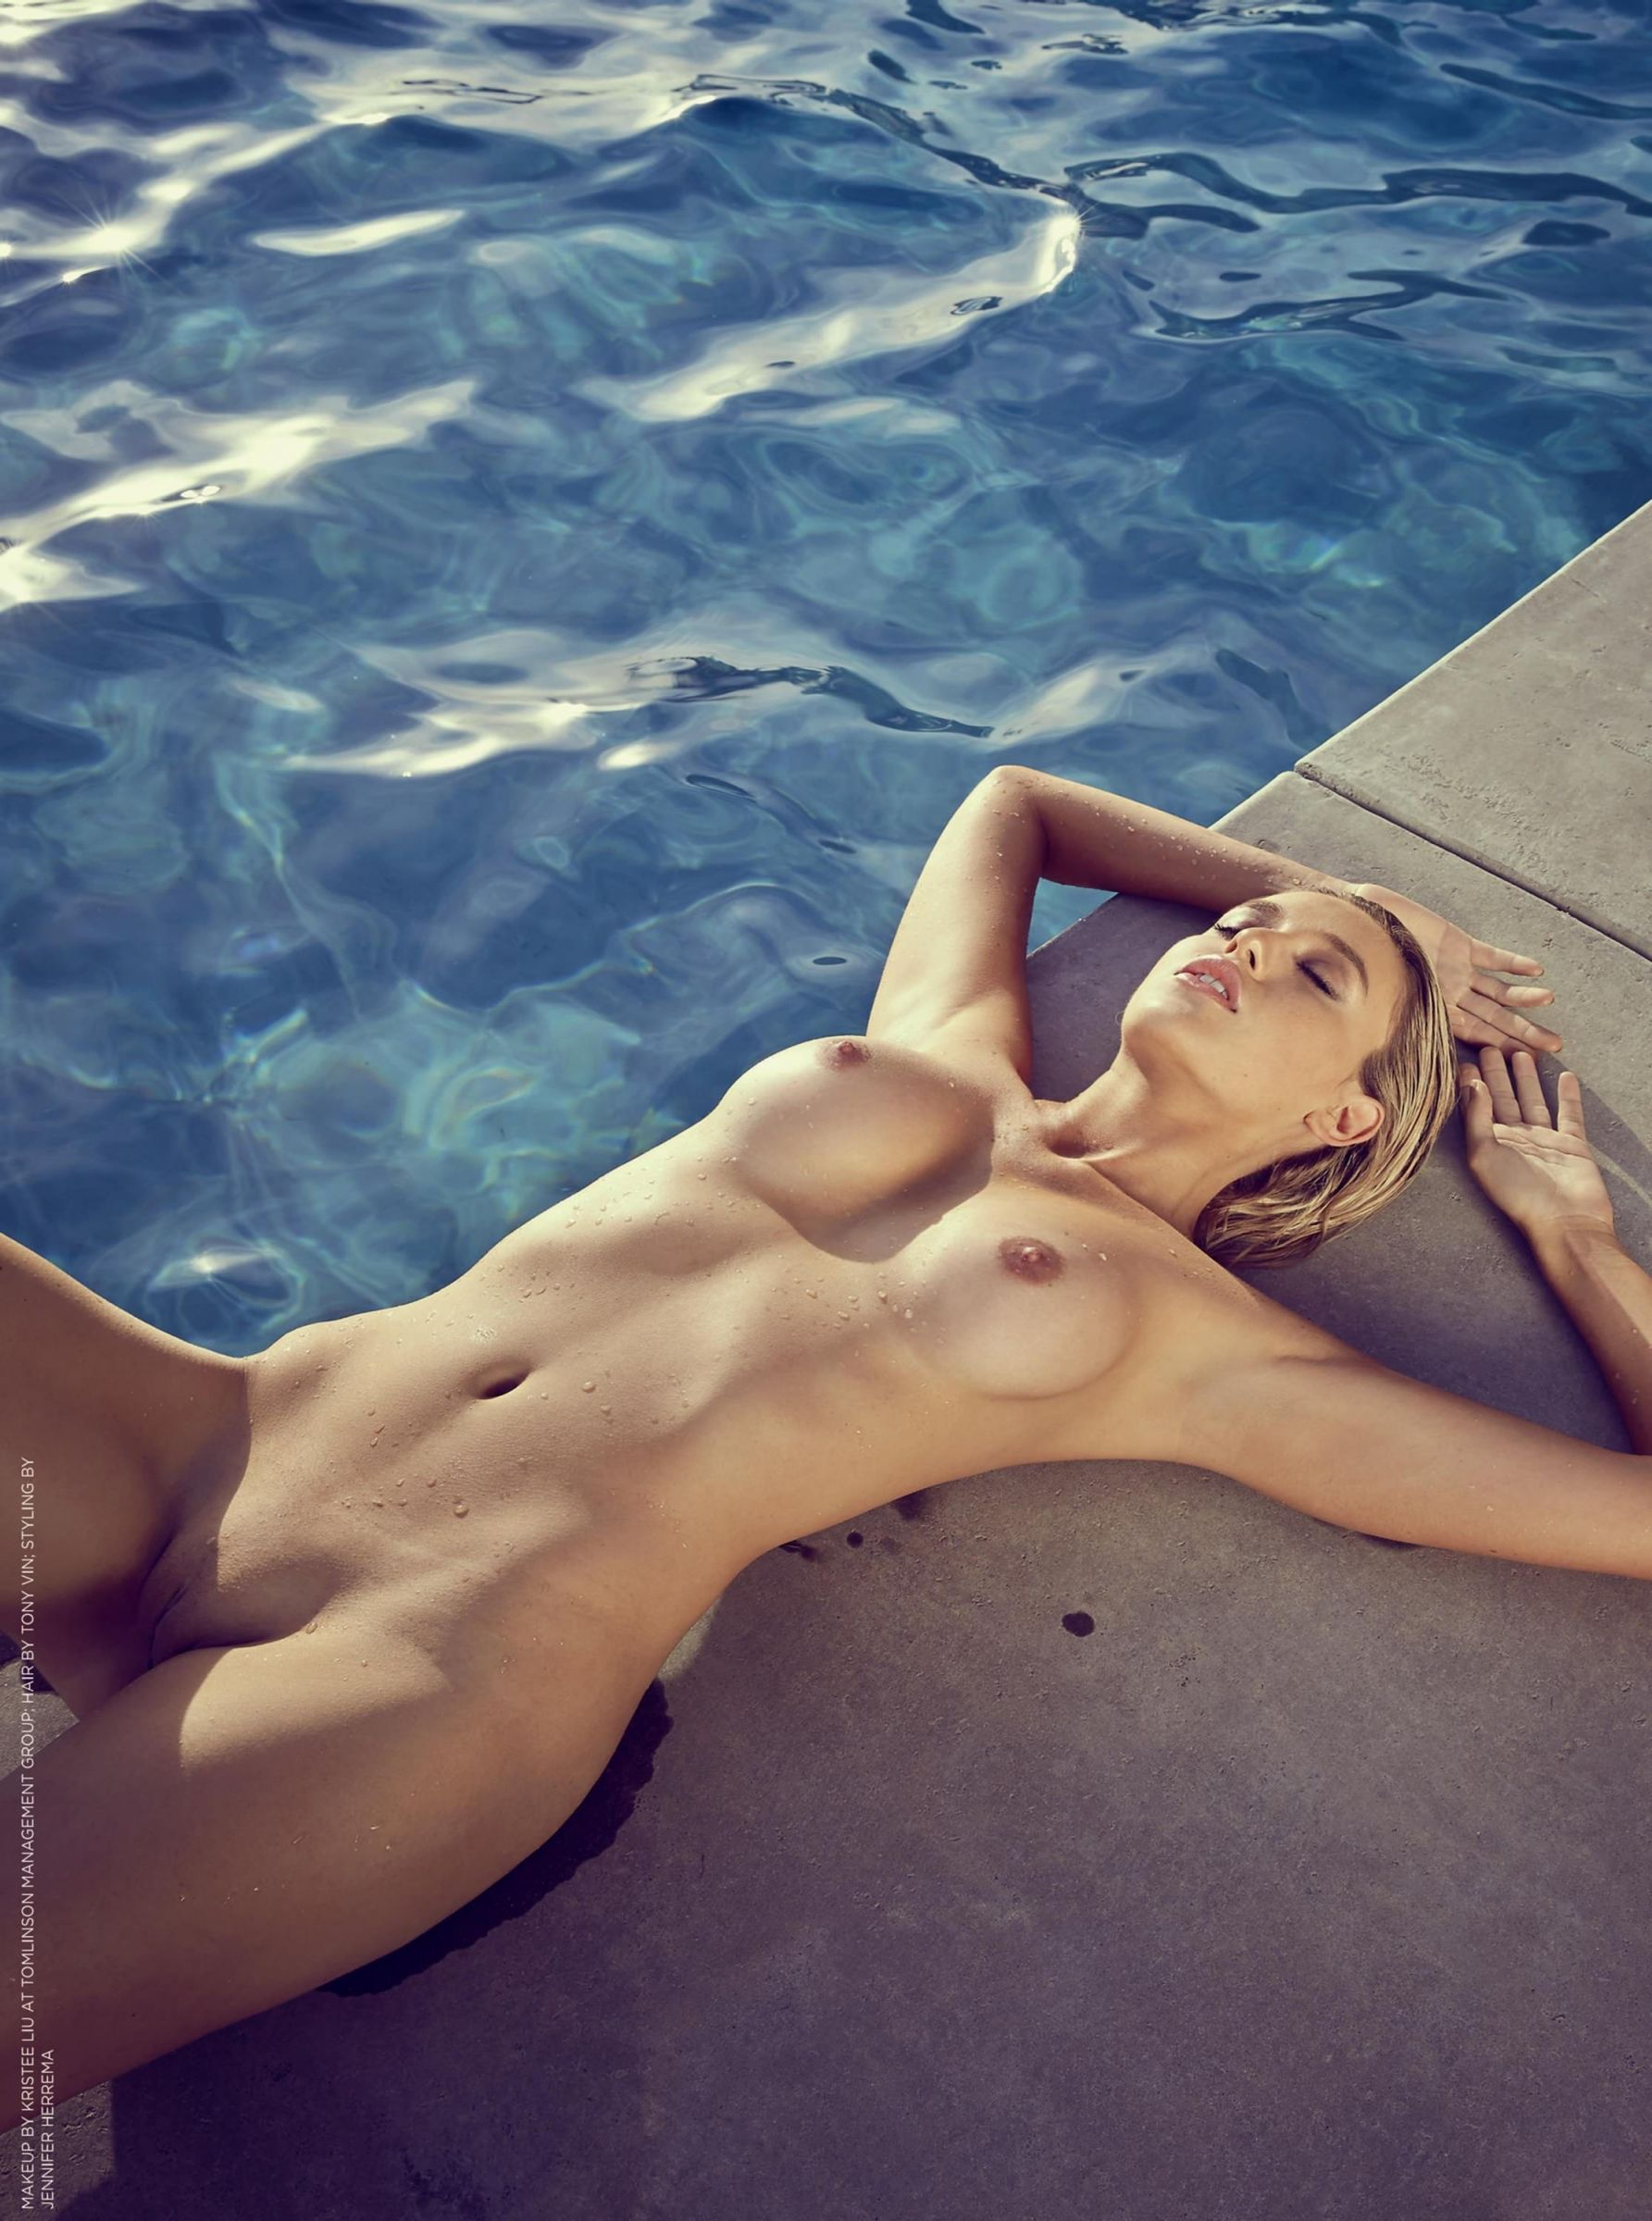 Super hot naked women